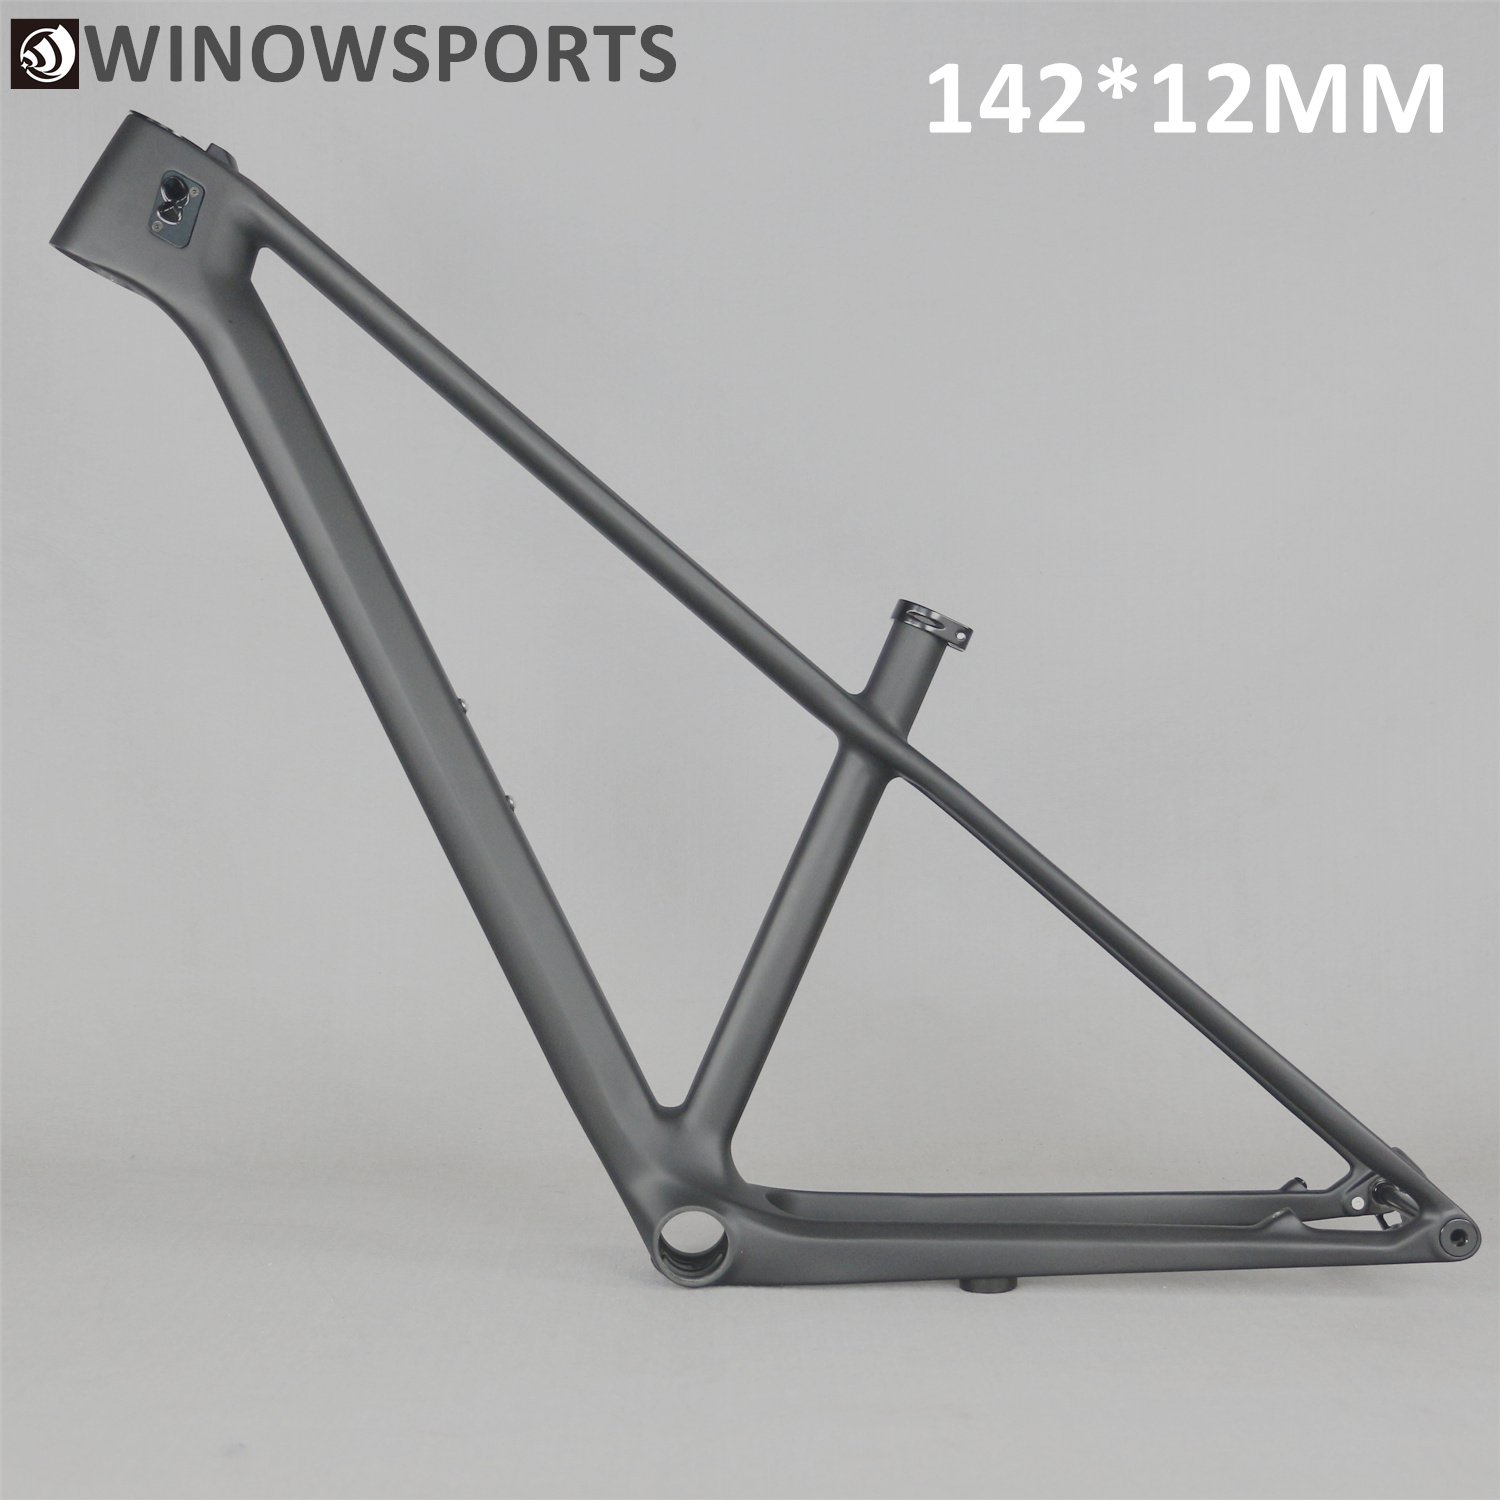 New 29er <font><b>carbon</b></font> Mountain MTB Bicycle <font><b>Frame</b></font> Toray t800 <font><b>carbon</b></font> fiber UD bike <font><b>Frame</b></font> <font><b>29</b></font> inch XC hard tail original mtb bike <font><b>frame</b></font> image